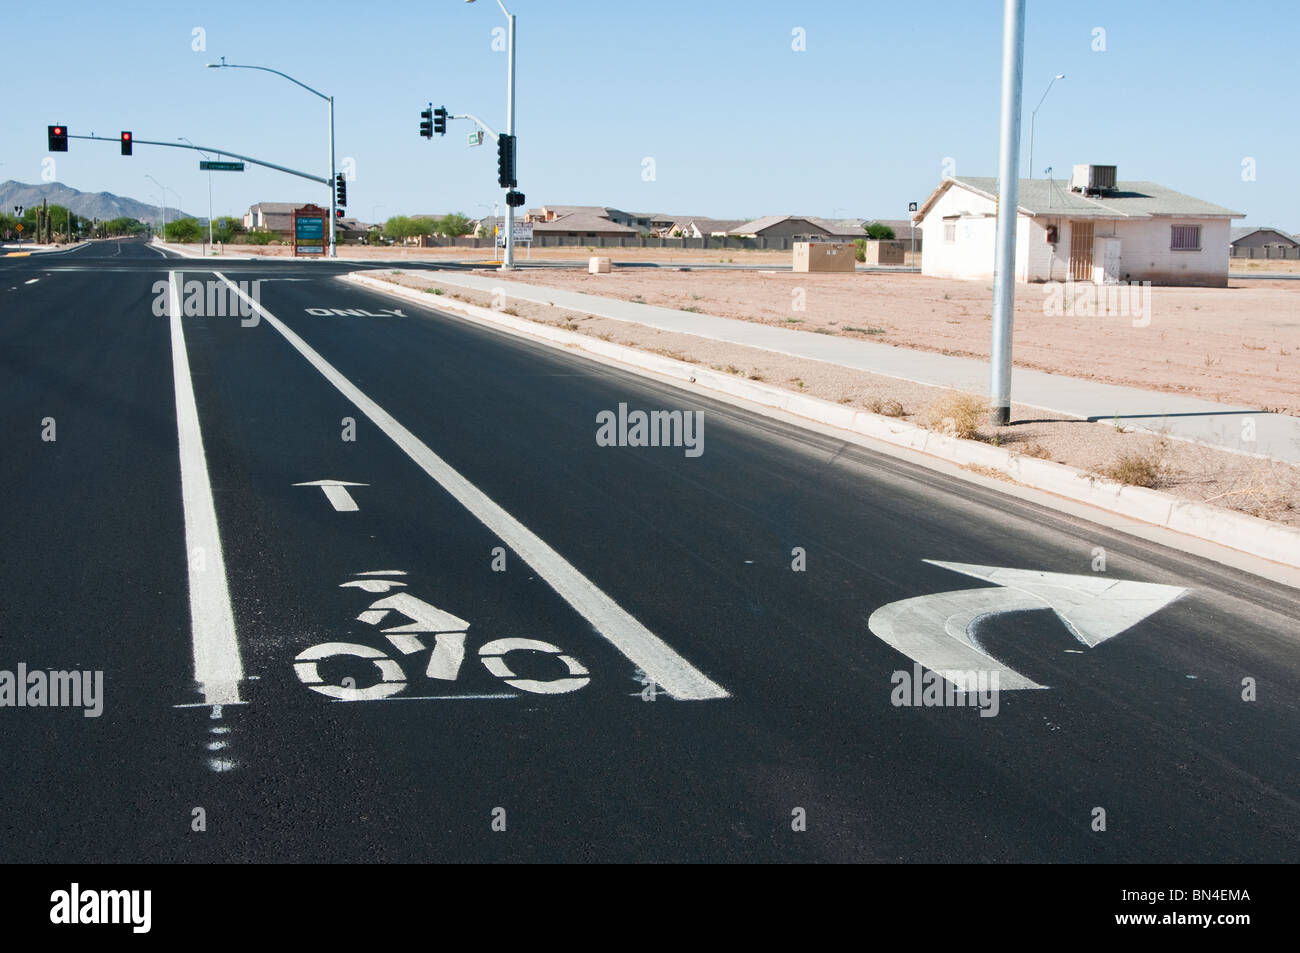 A bike lane is indicated by painted markings on a city street. A right turn lane is on the right. - Stock Image